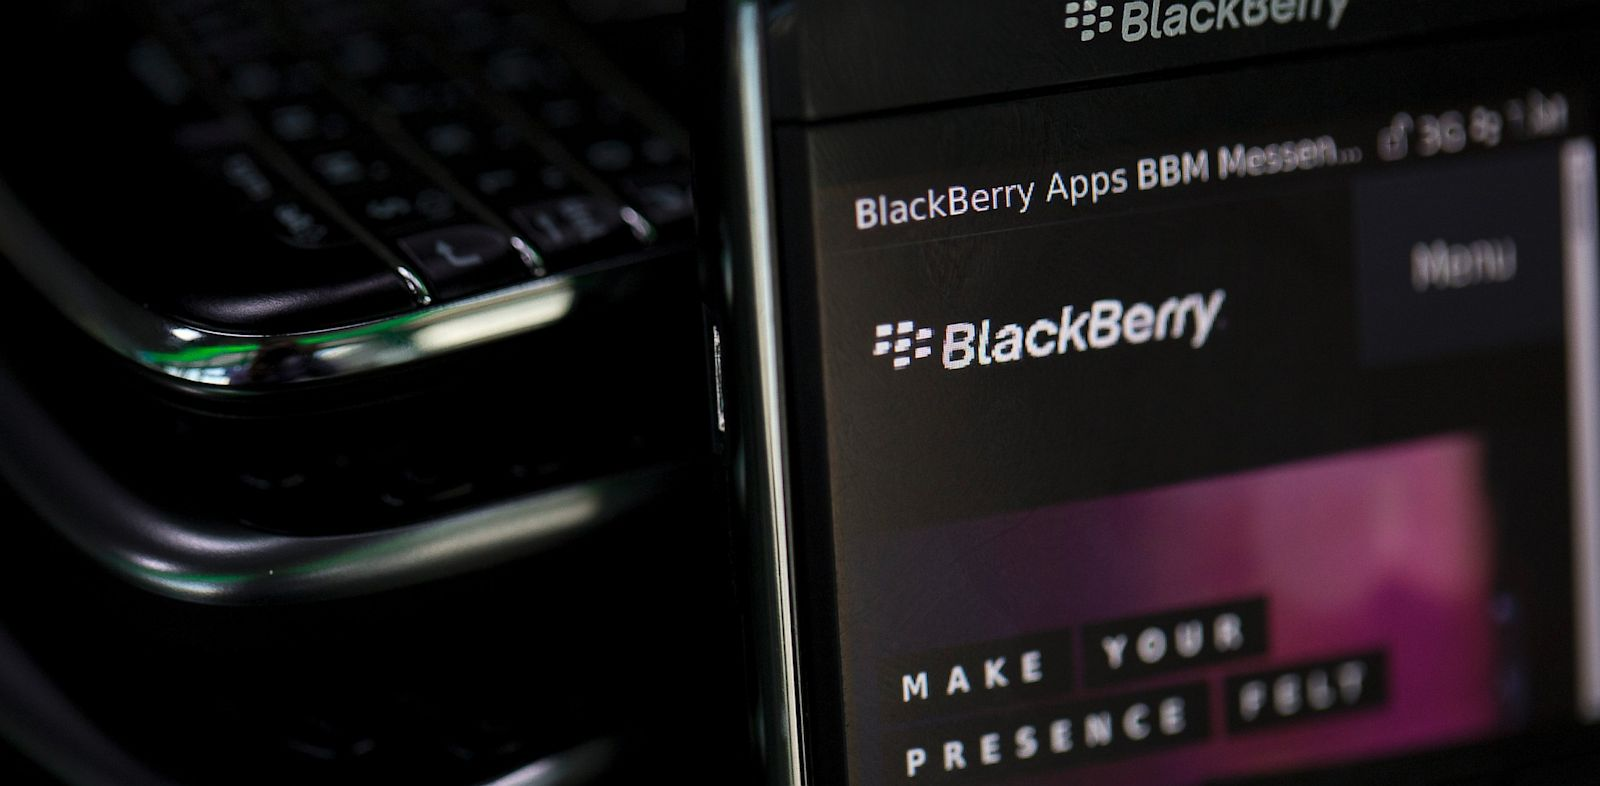 PHOTO: The BlackBerry logo is visible on a BlackBerry smartphone in this photograph taken in London, Sept. 24, 2013.